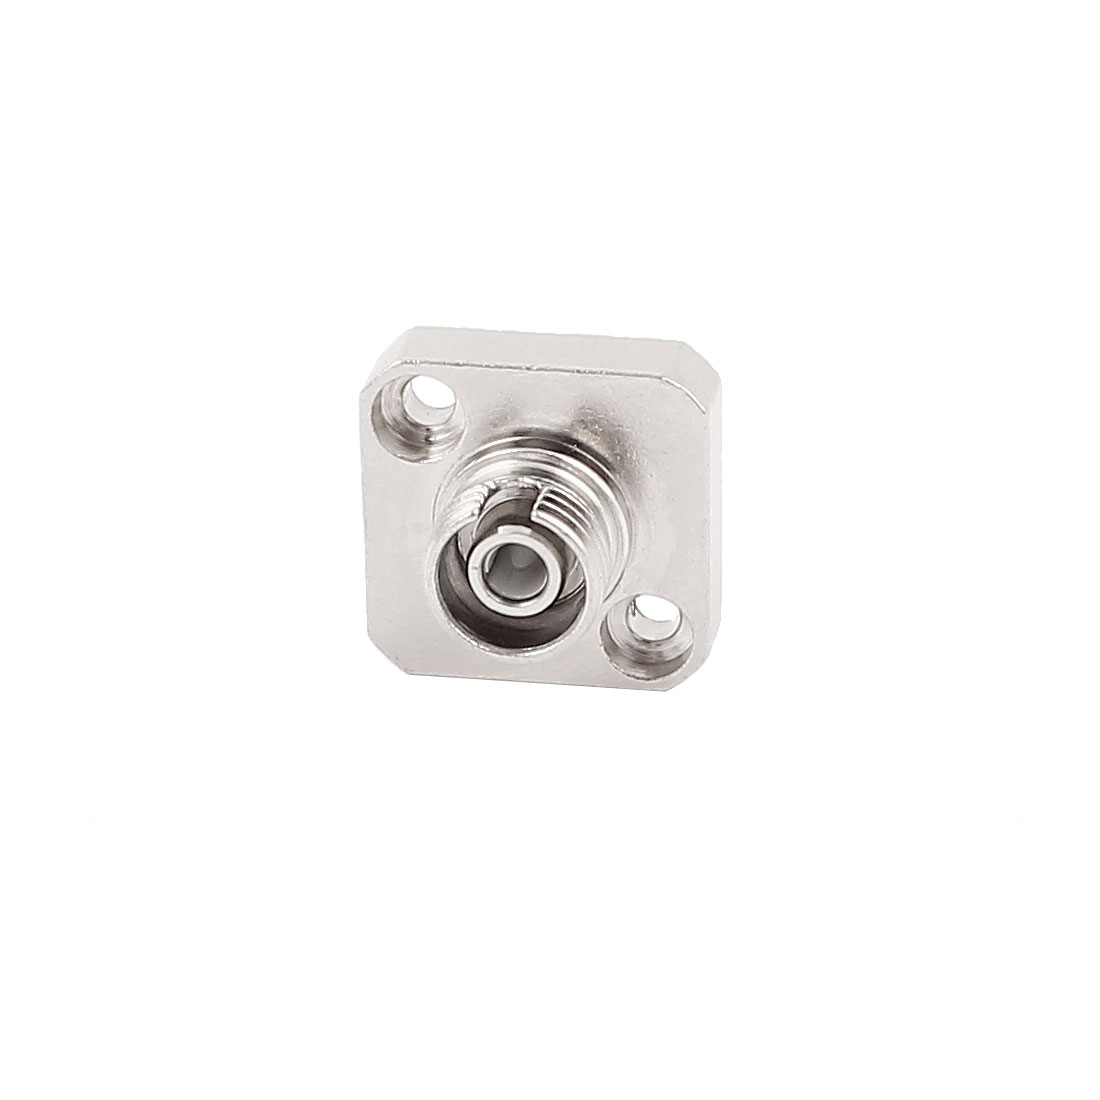 Square SM/MM FC Fibre Coupler Flange Connector Optical Fiber Adapter